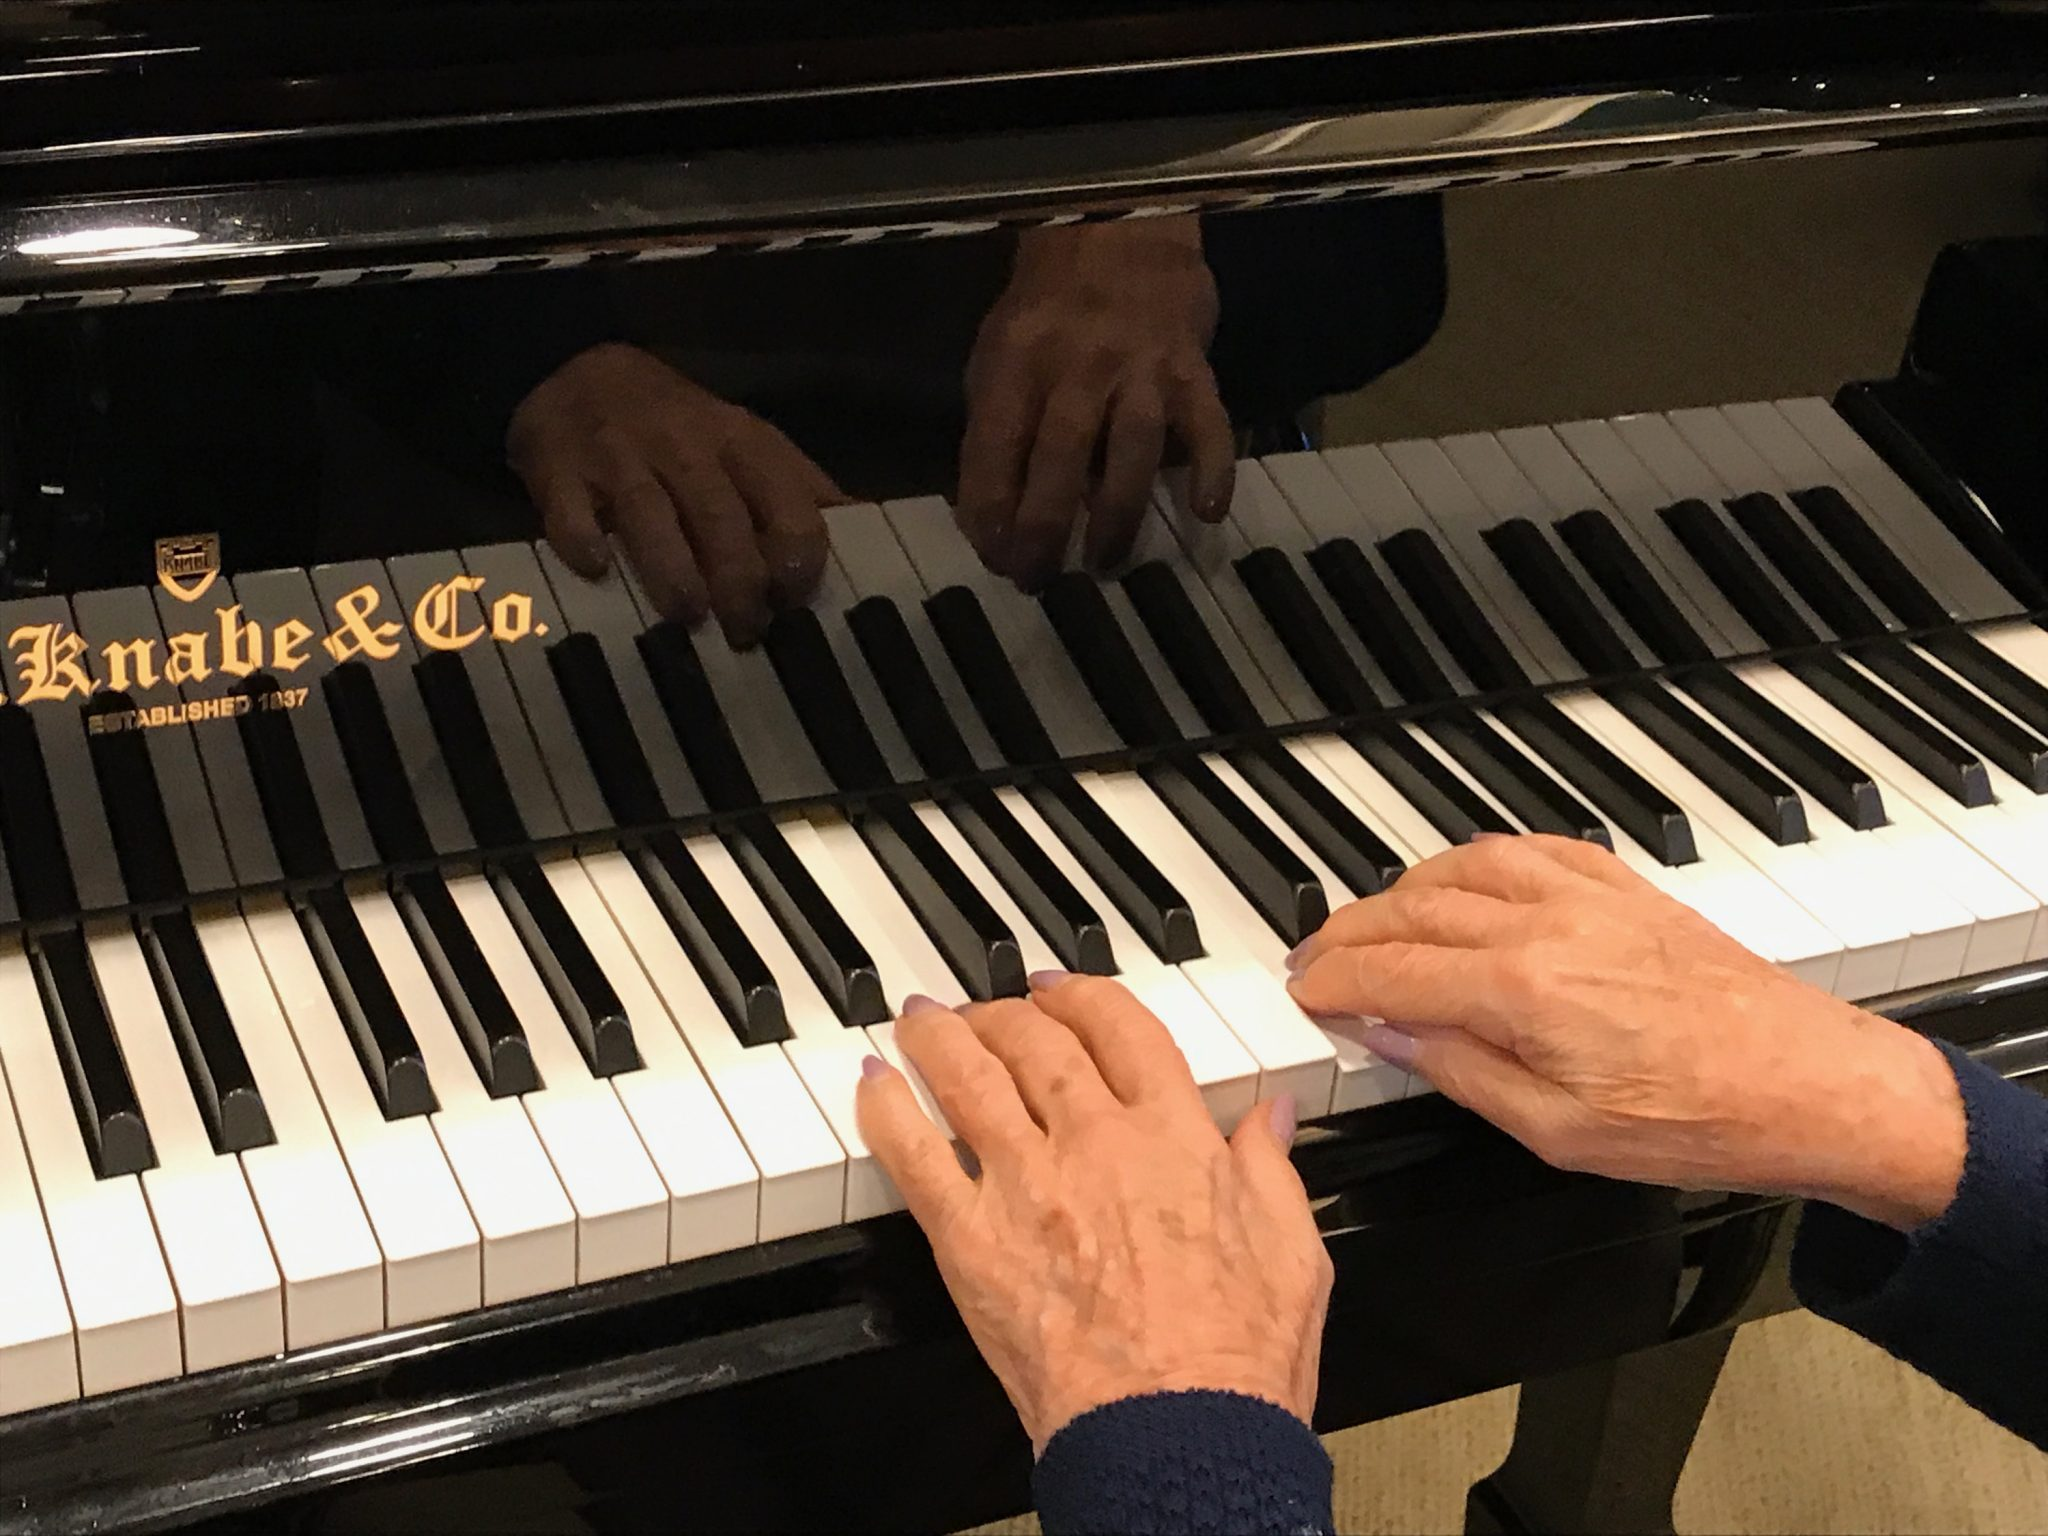 Always tickling the ivories. Her music & love with live on in our hearts